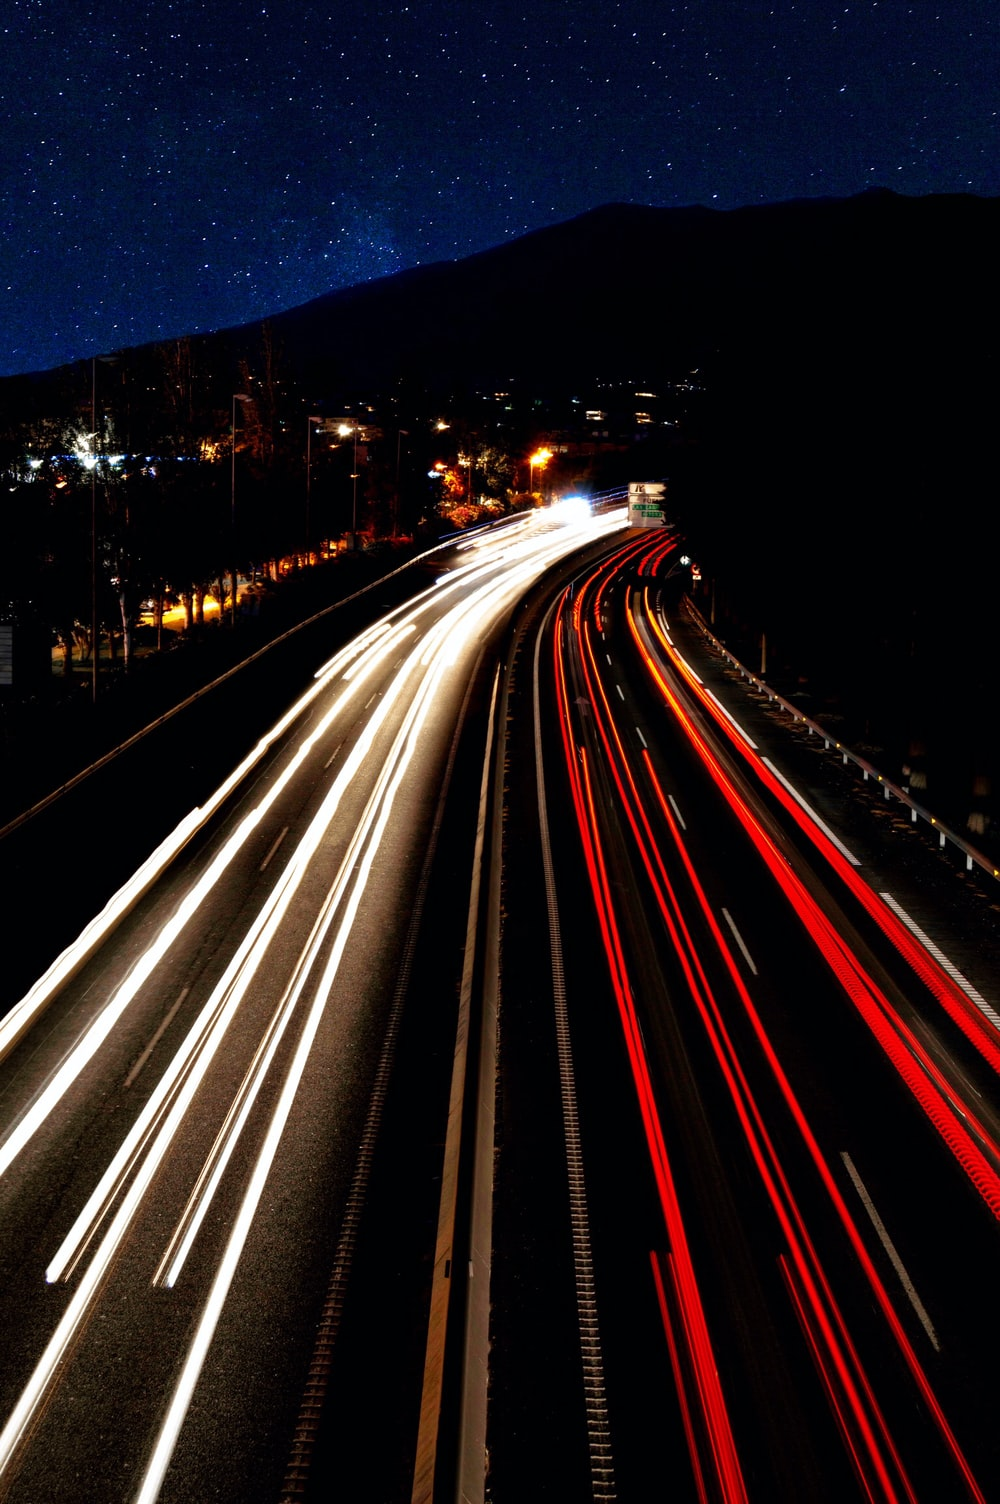 timelapse photo of vehicles on road during nighttime